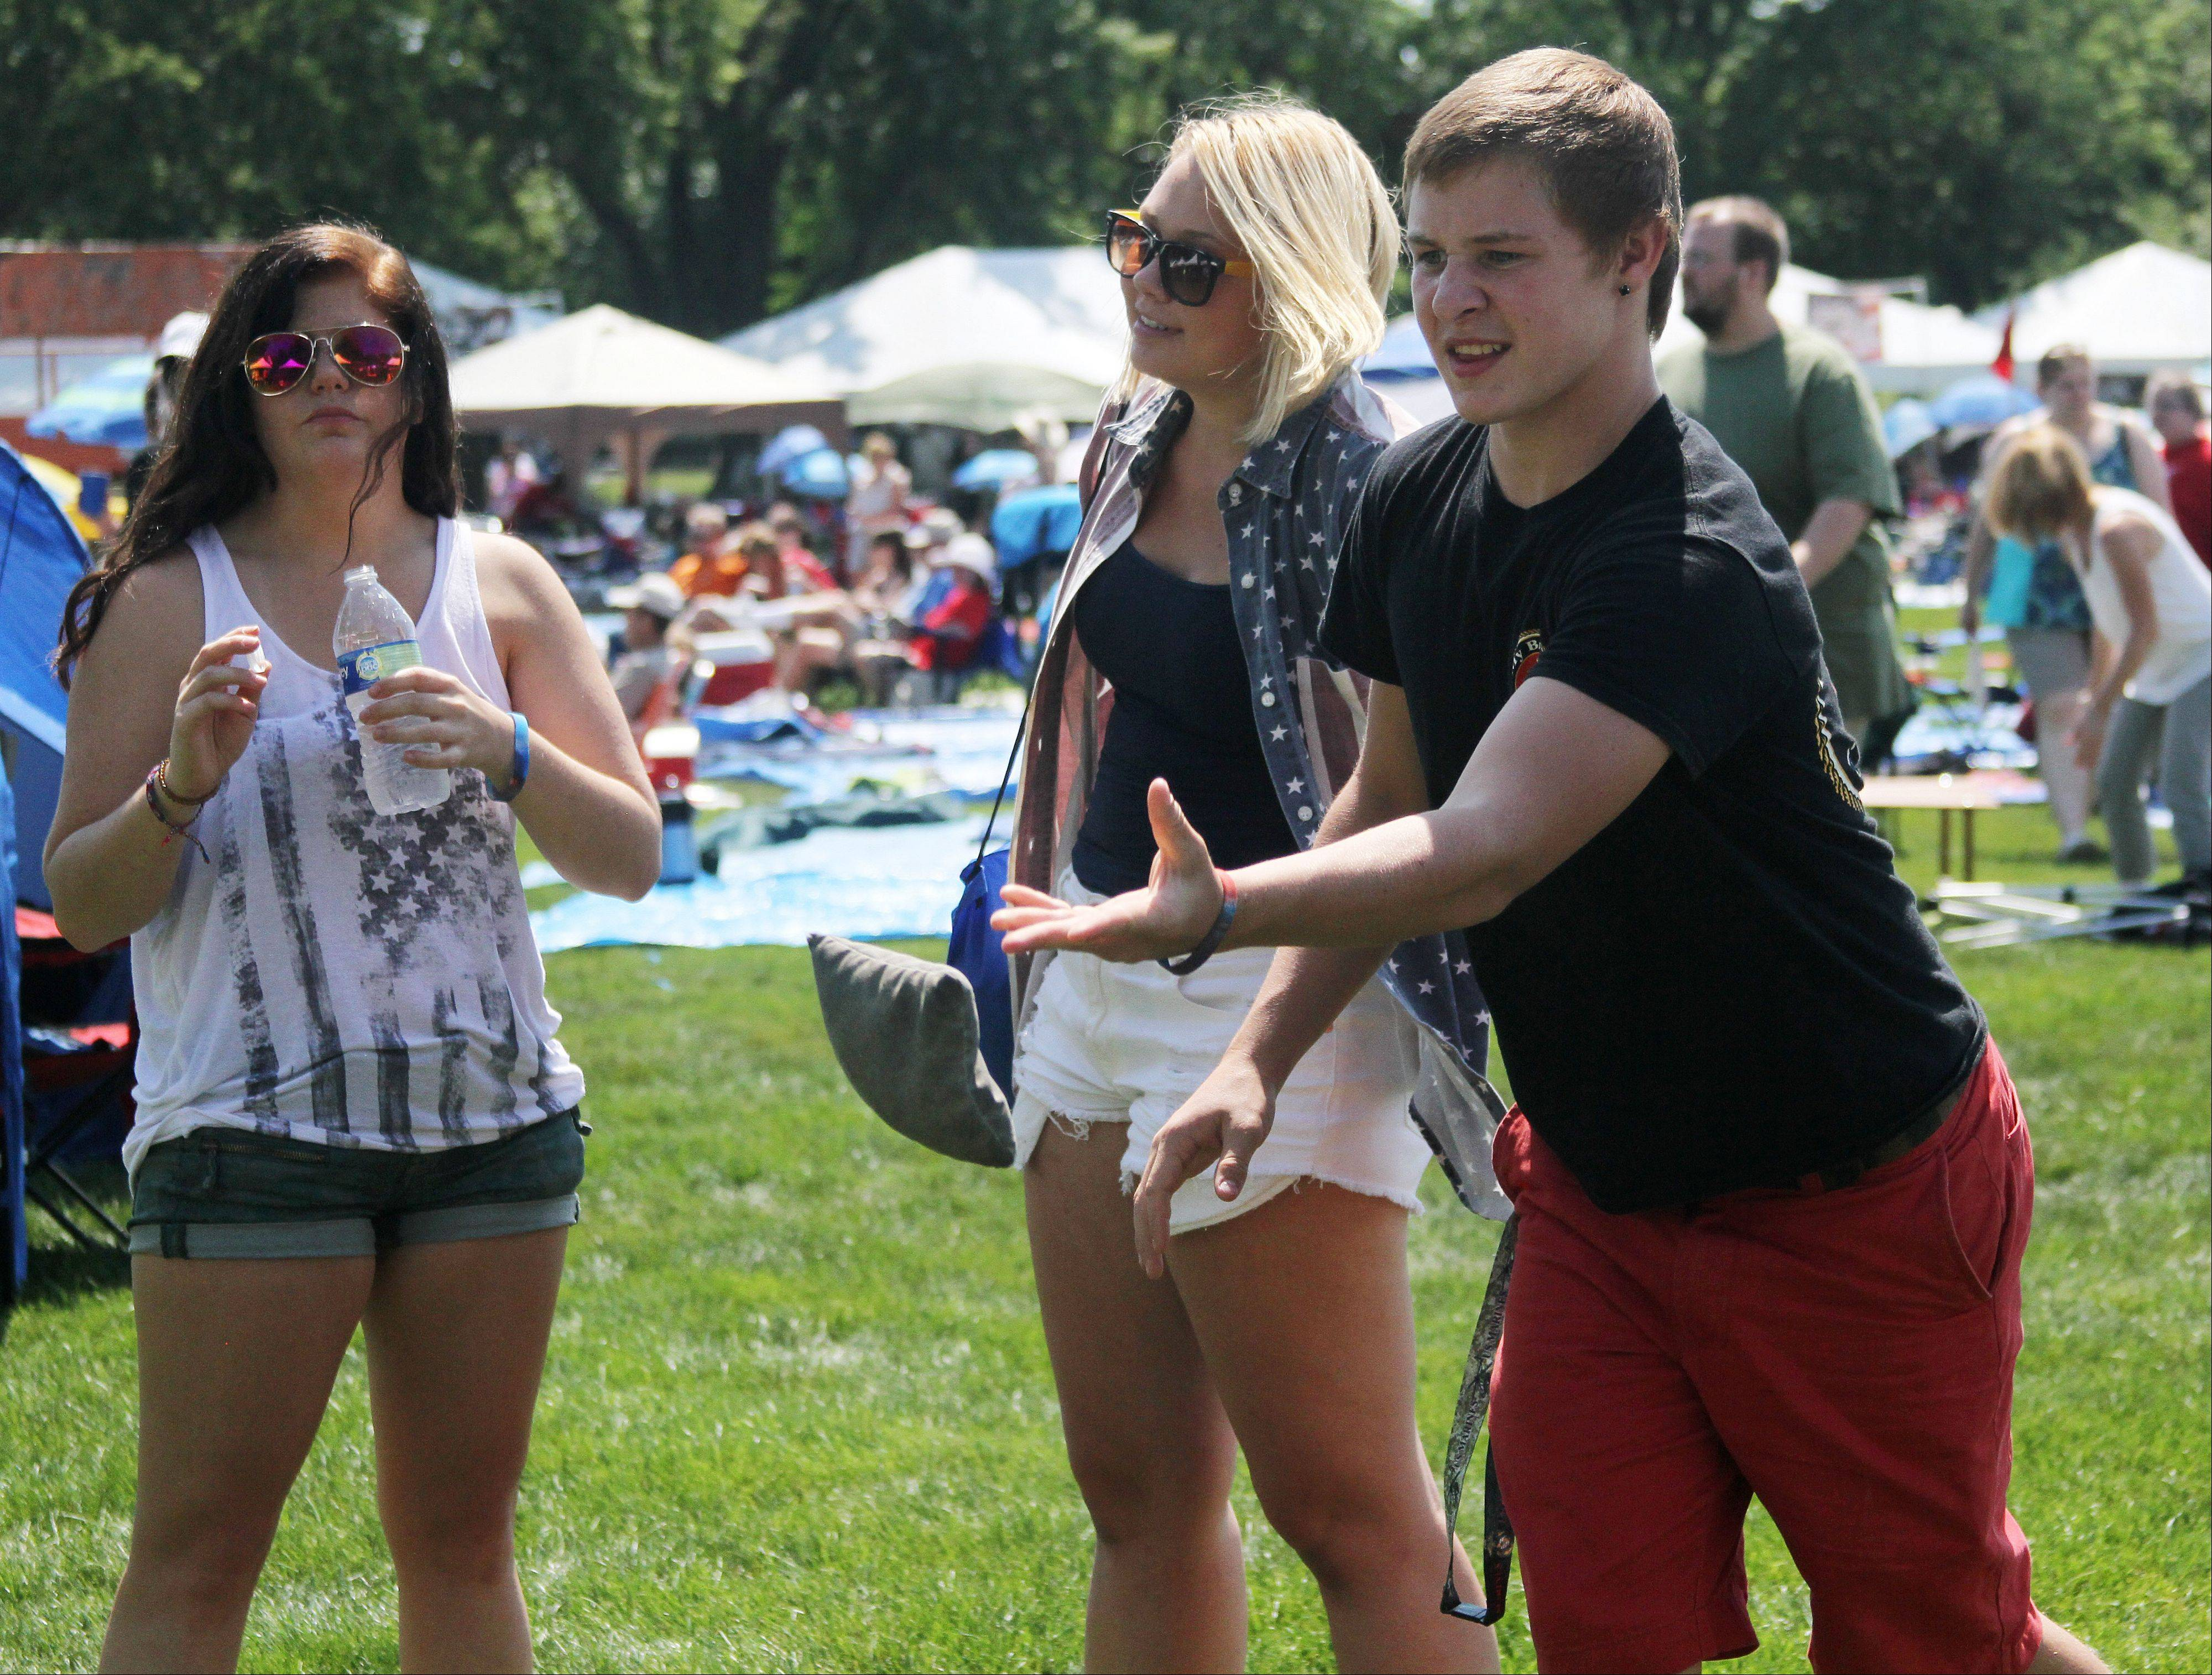 Andrea Esposito of Oak Lawn, left, and Sami Burton of Mount Prospect, center, watch as Ryan McLaughlin of Mount Prospect plays bags at the 95.5 The River booth at the annual Rockin' for the Troops concert Saturday at Cantigny Park in Wheaton.